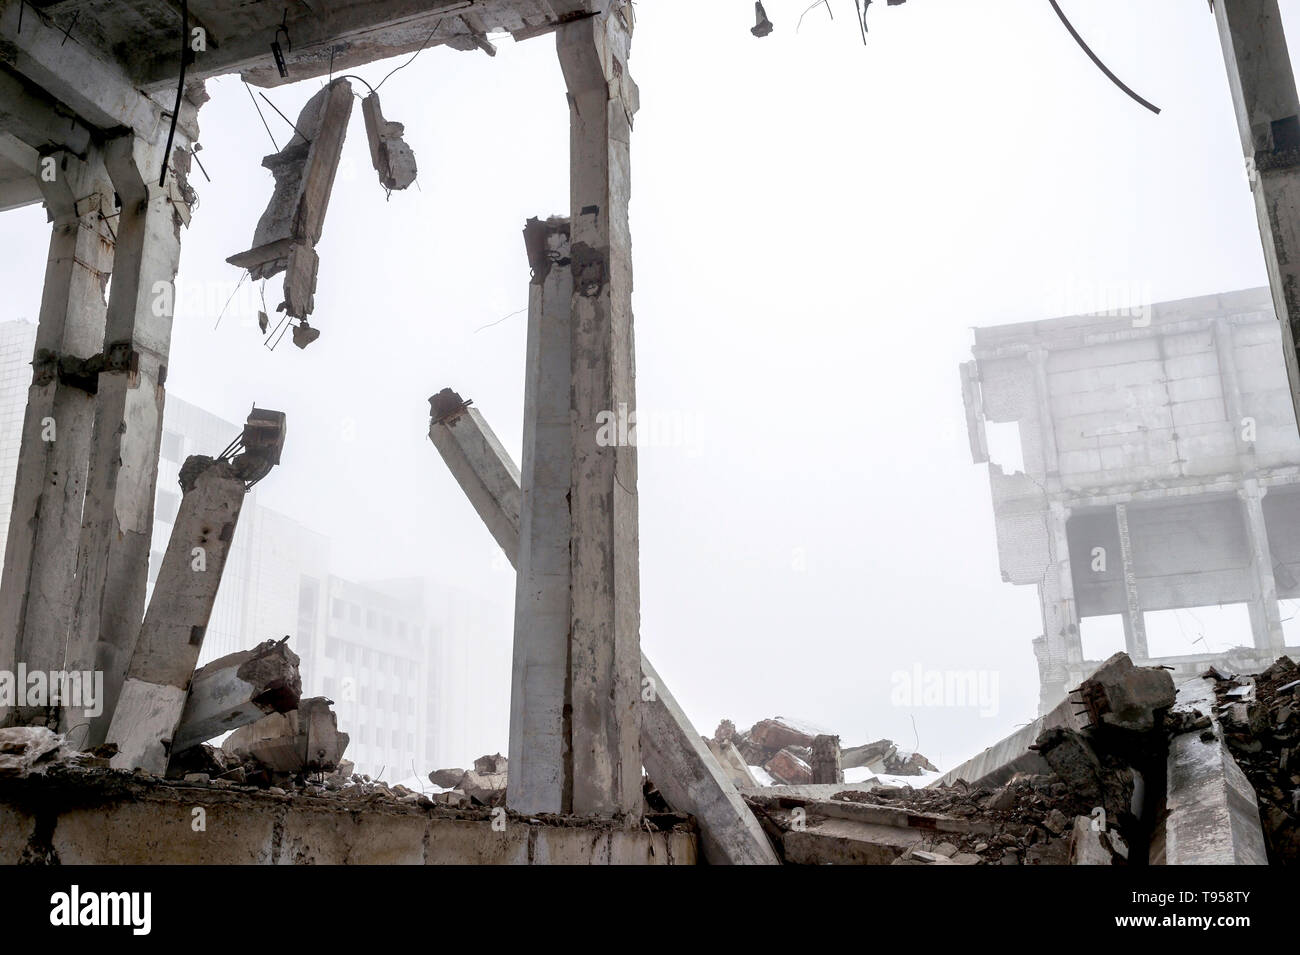 The destroyed big concrete building in a foggy haze. The remains of the frame of gray concrete piles and debris of the building structure. Background. Stock Photo